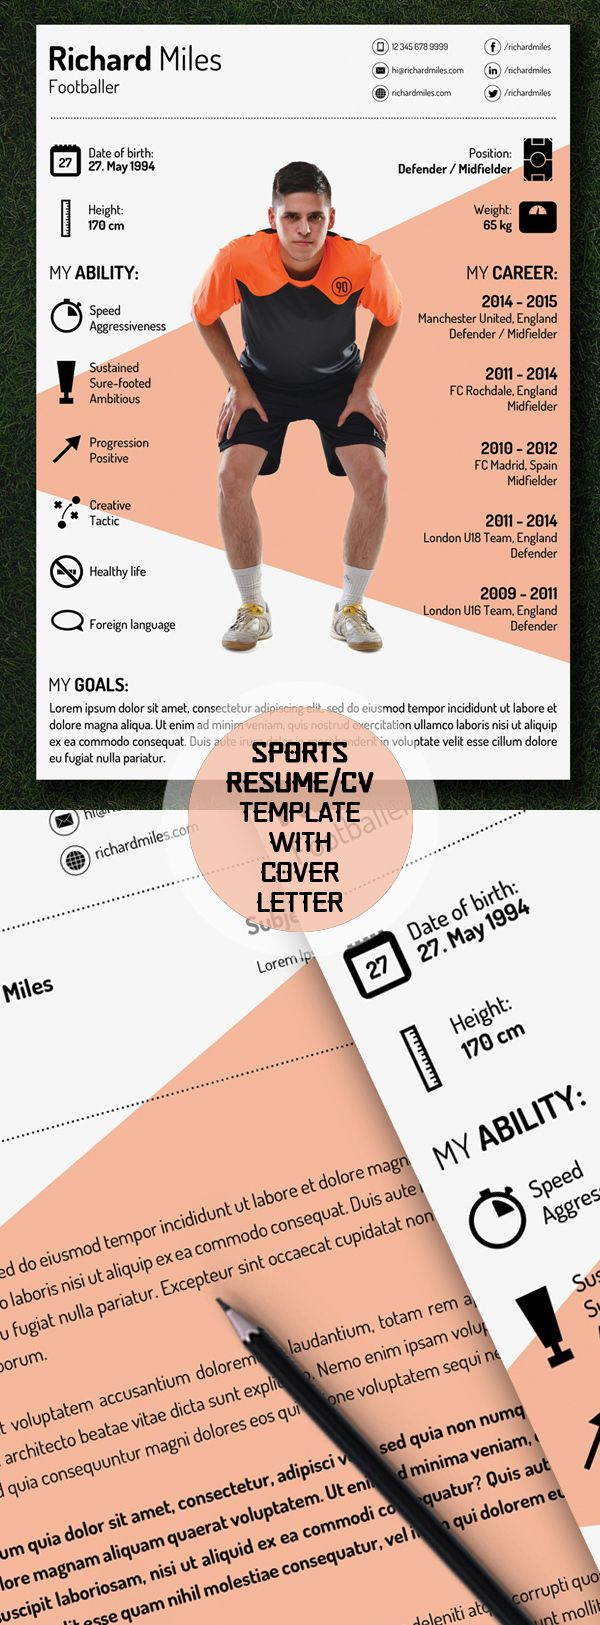 free sport resume  cv template  freebies  resumetemplate  psdresume  cvresume  psdtemplate